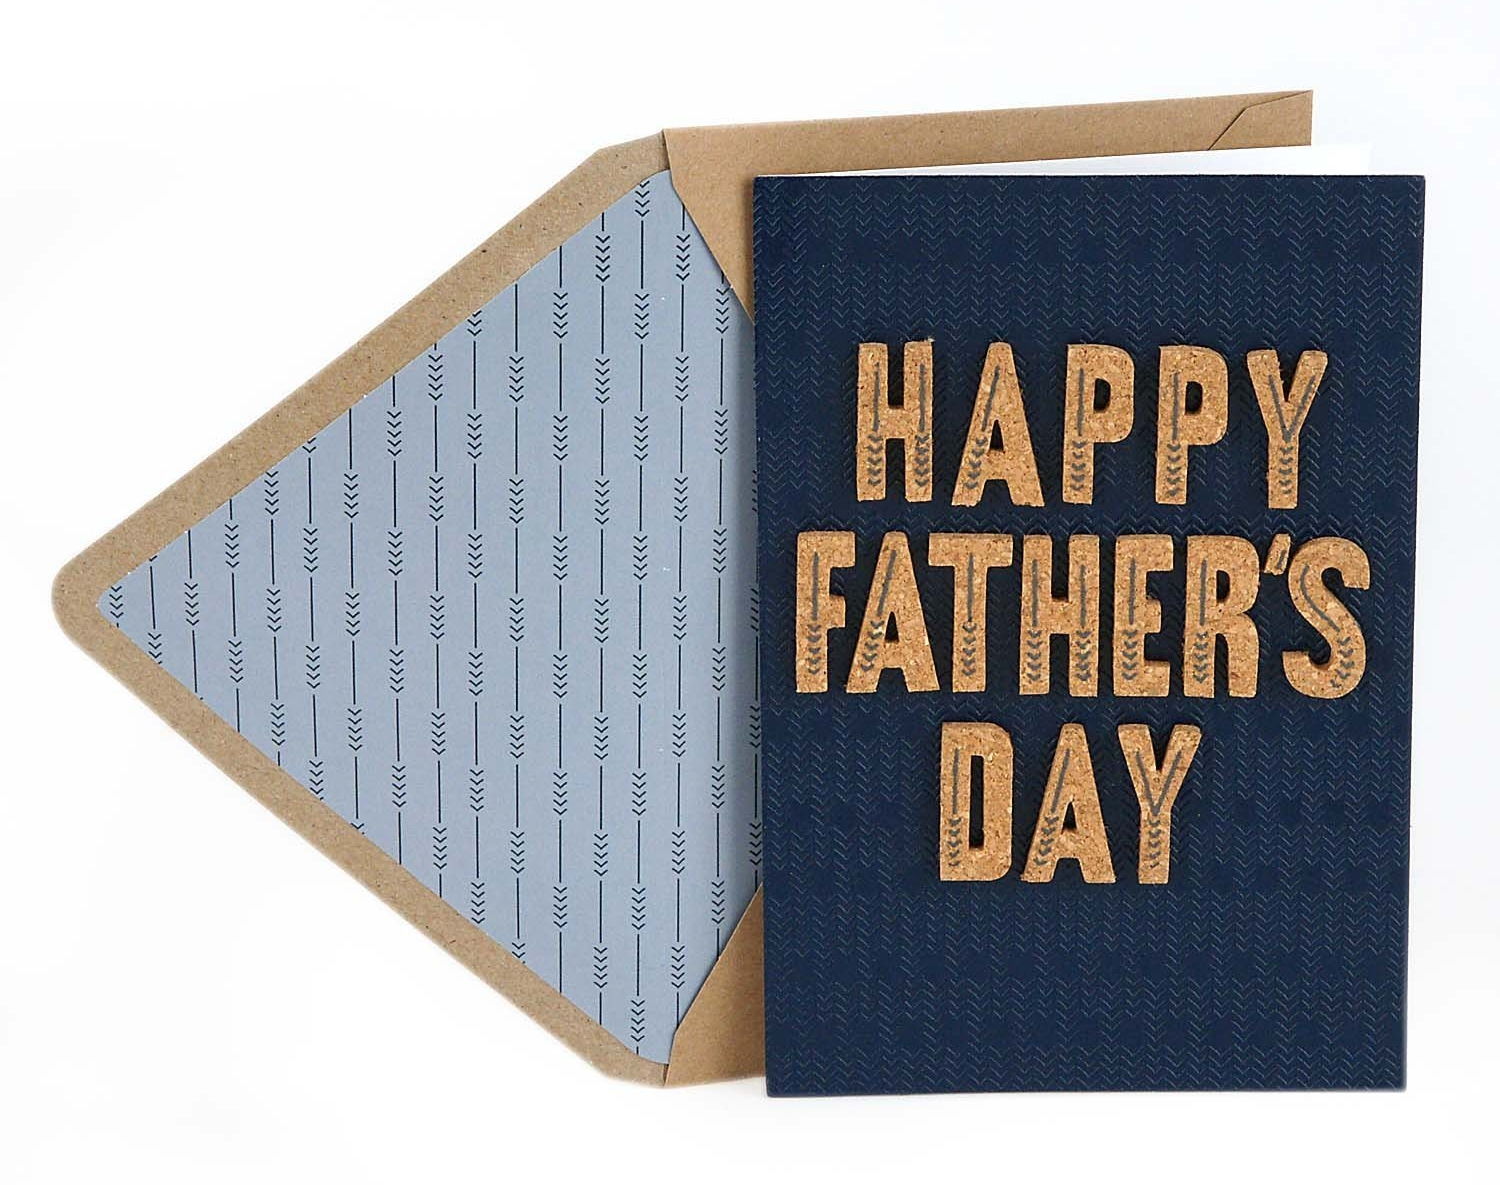 Feature image: Hallmark Father's Day Card - Bass Fish Design